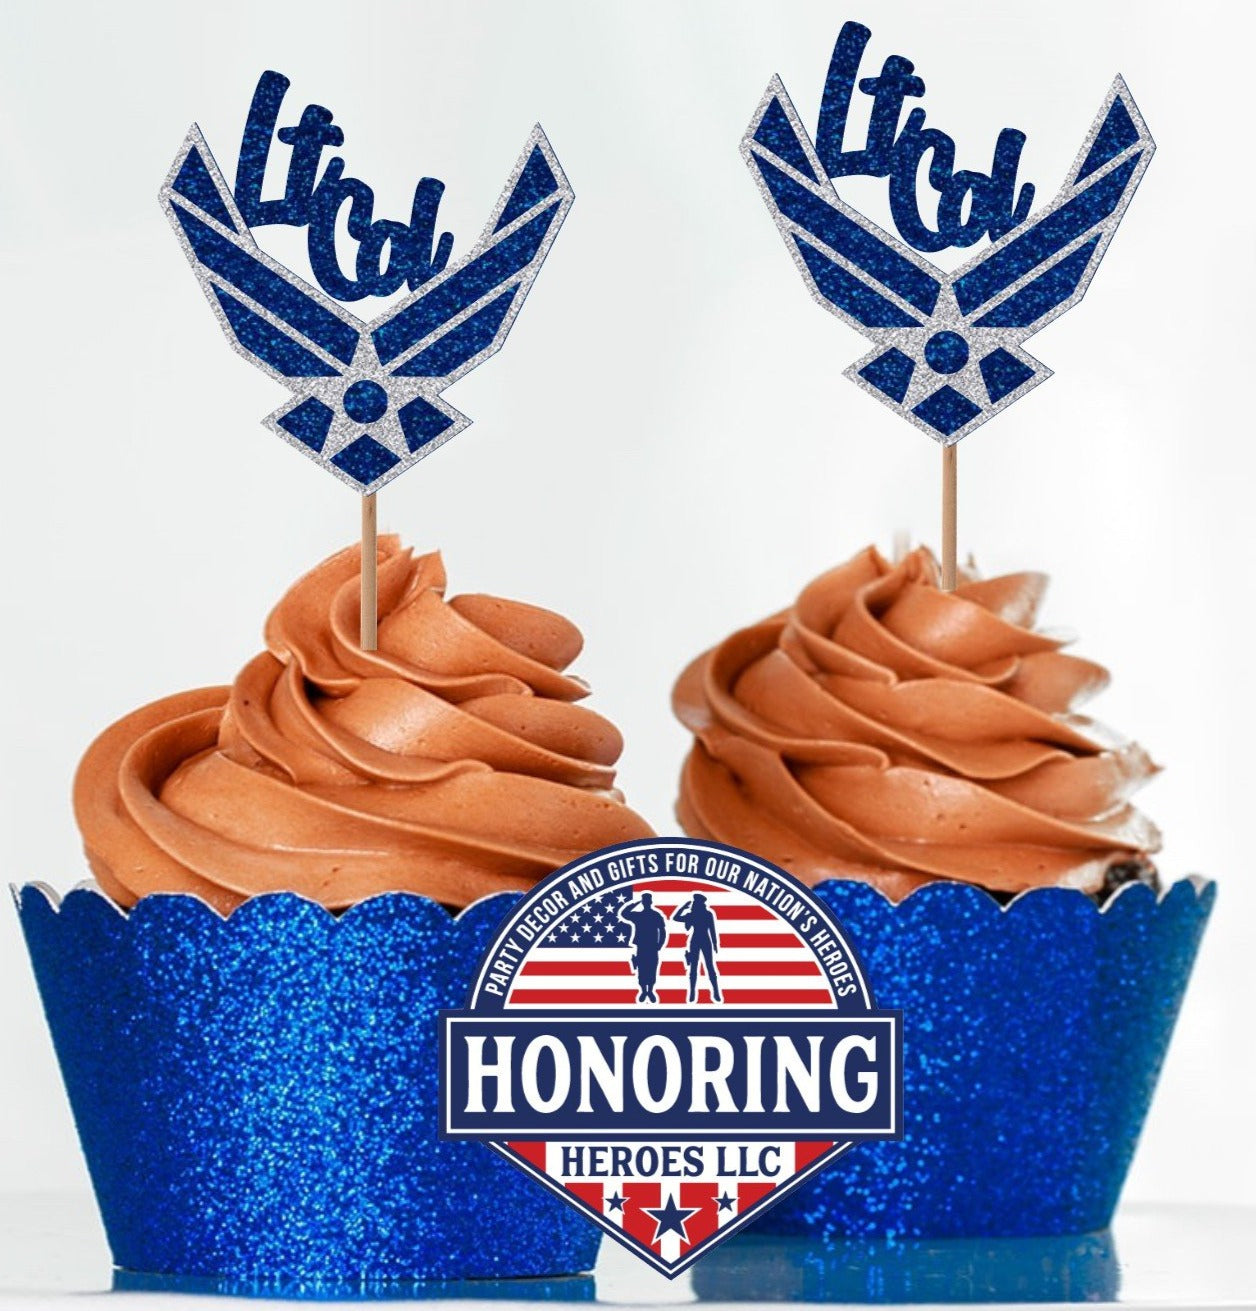 Air Force Rank Emblem Cupcake Topper. USAF Cupcake Topper. Retirement Cupcake Topper